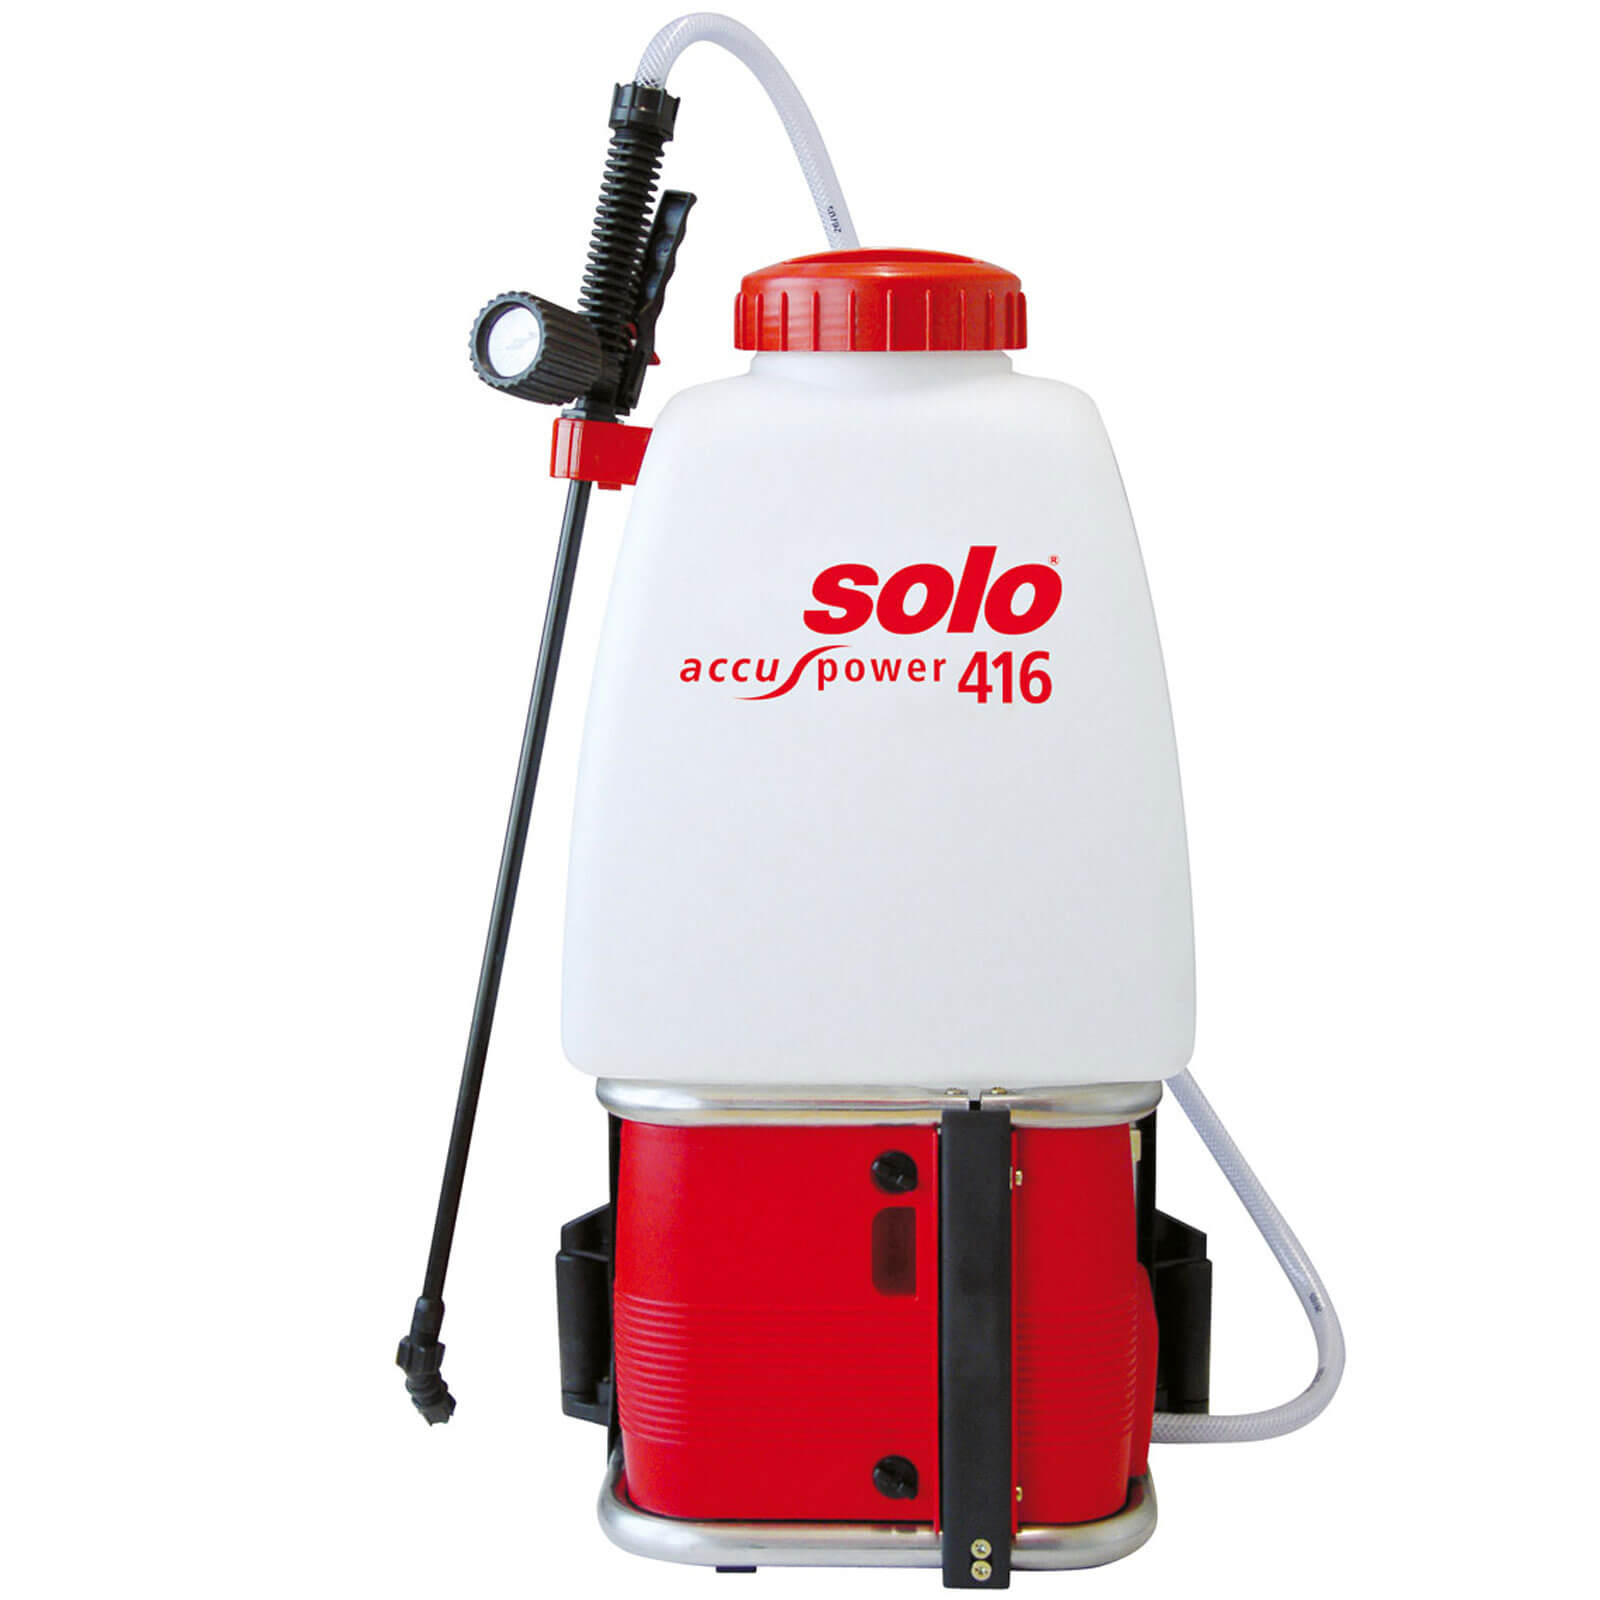 Solo 416 Backpack Rechargeable Chemical & Water Pressure Sprayer 20 Litre with 500mm Spray Lance